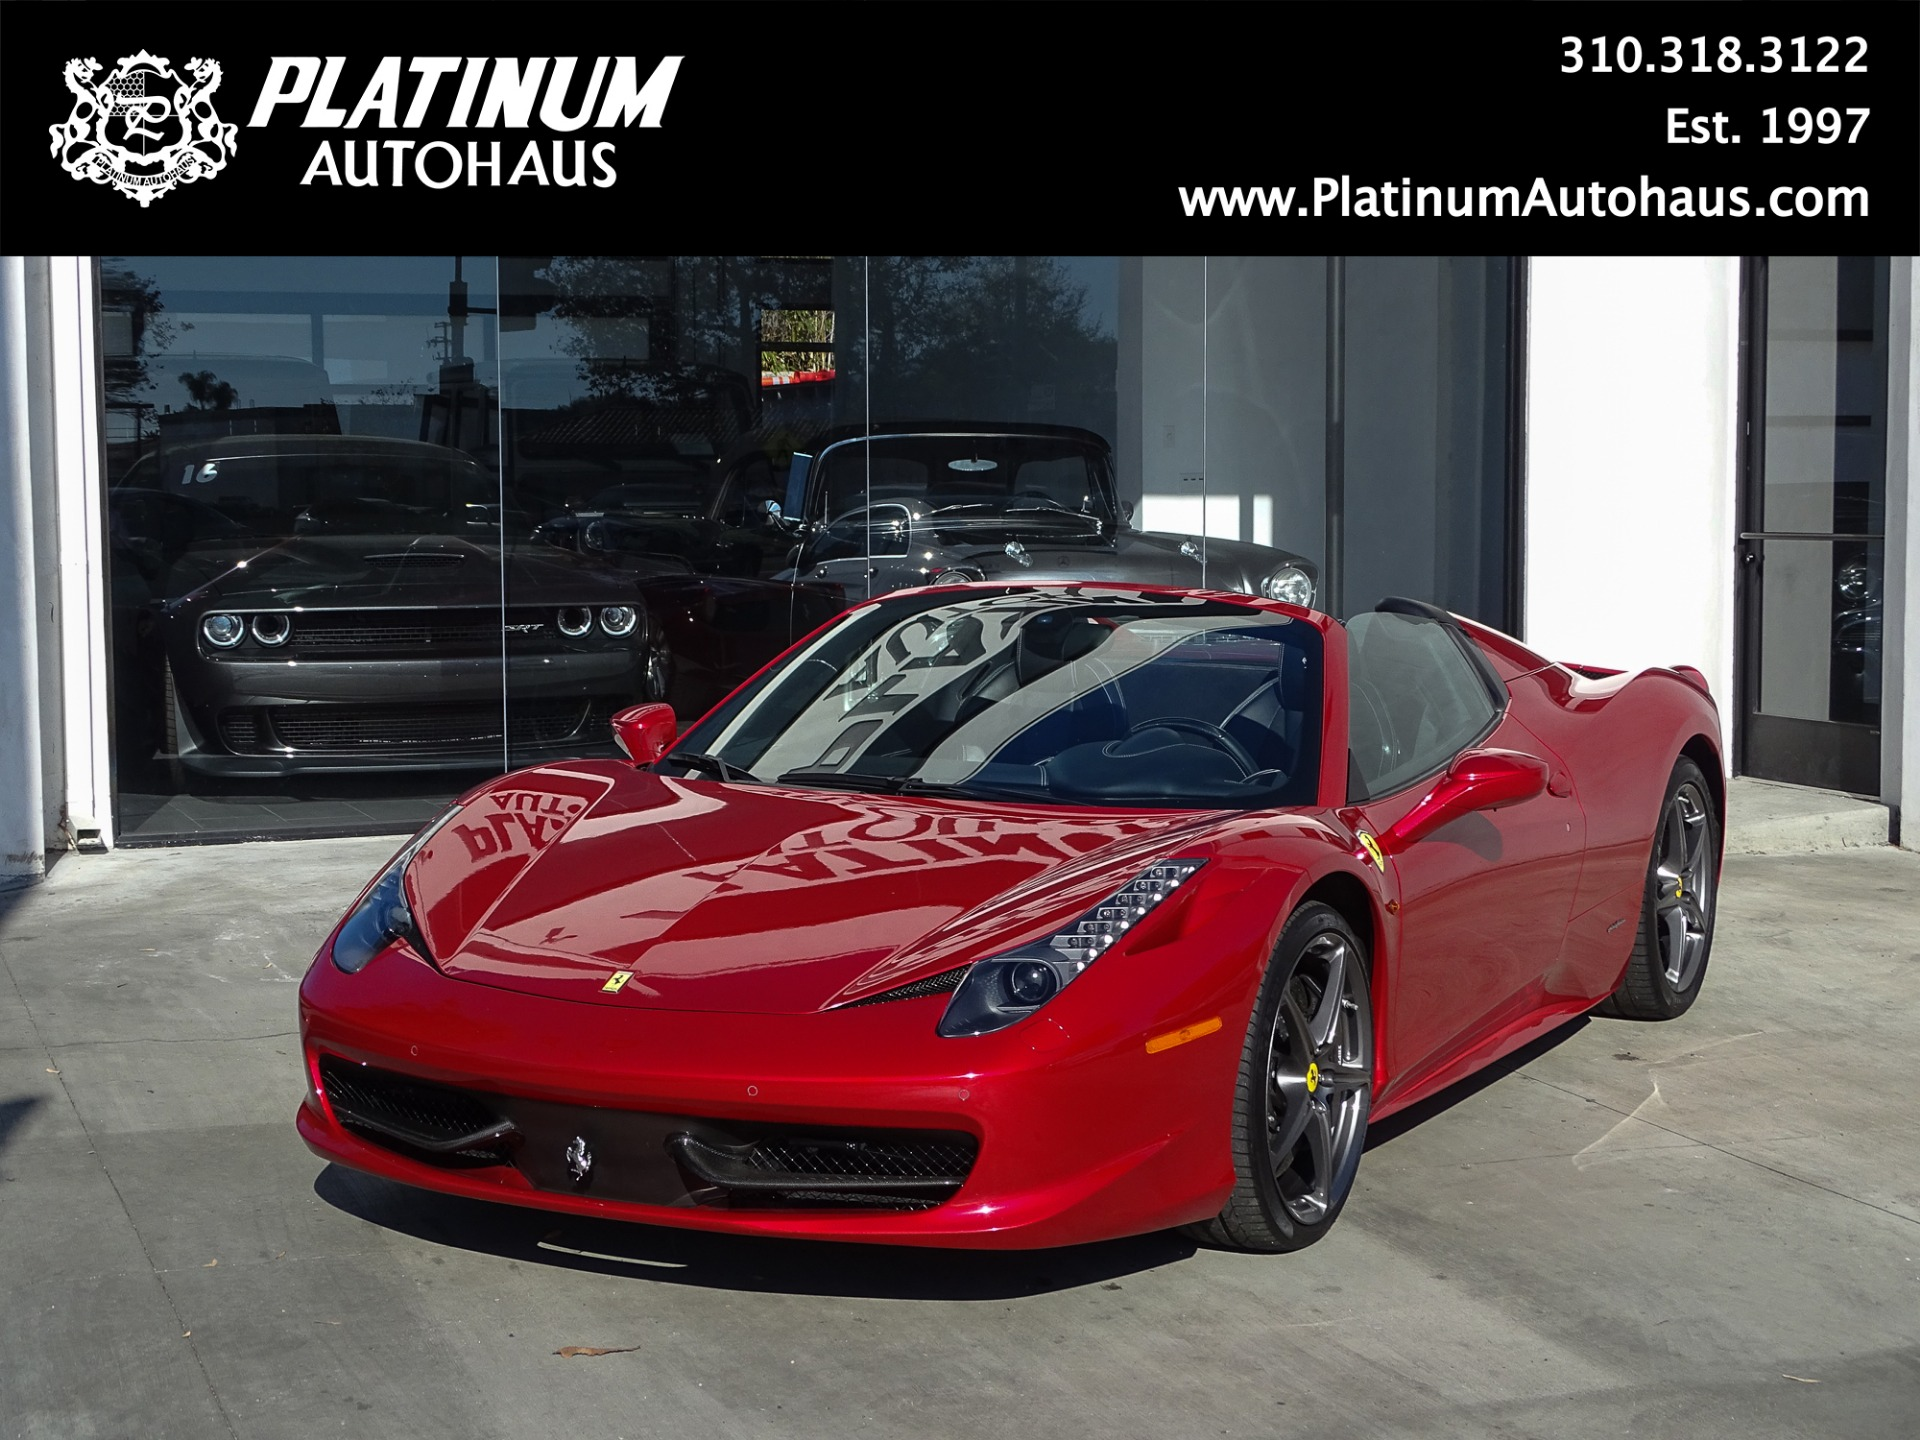 2013 Ferrari 458 Spider Stock 190101 For Sale Near Redondo Beach Ca Ca Ferrari Dealer